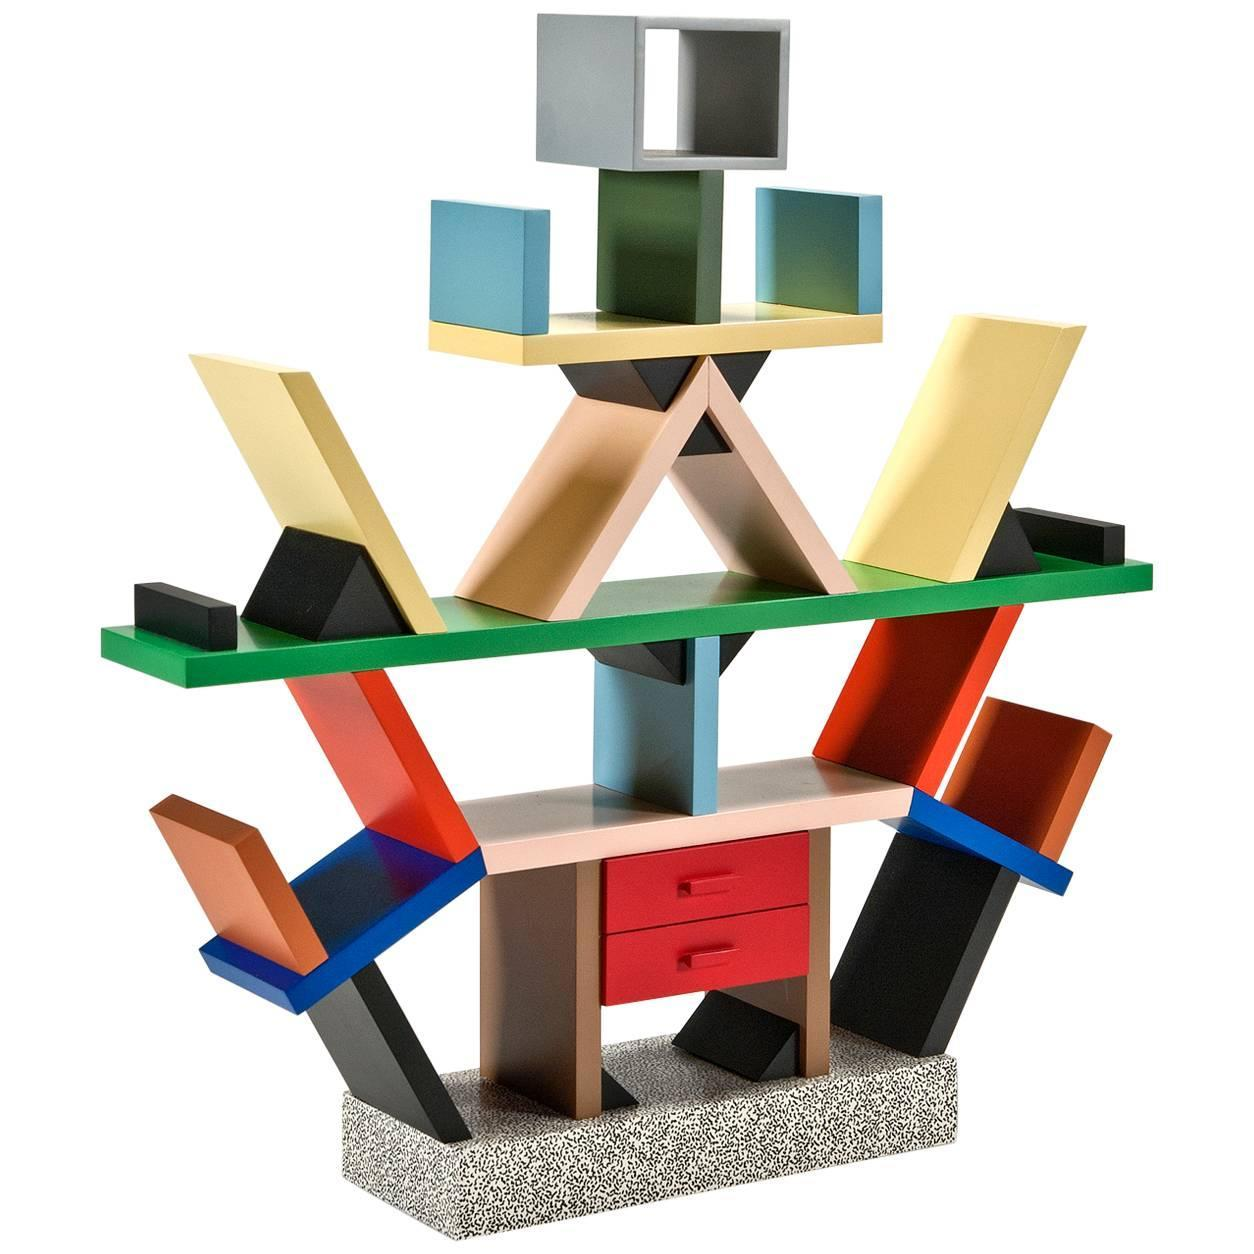 Carlton bookcase 39 1 4 scale miniature 39 by ettore sottsass for Memphis sottsass